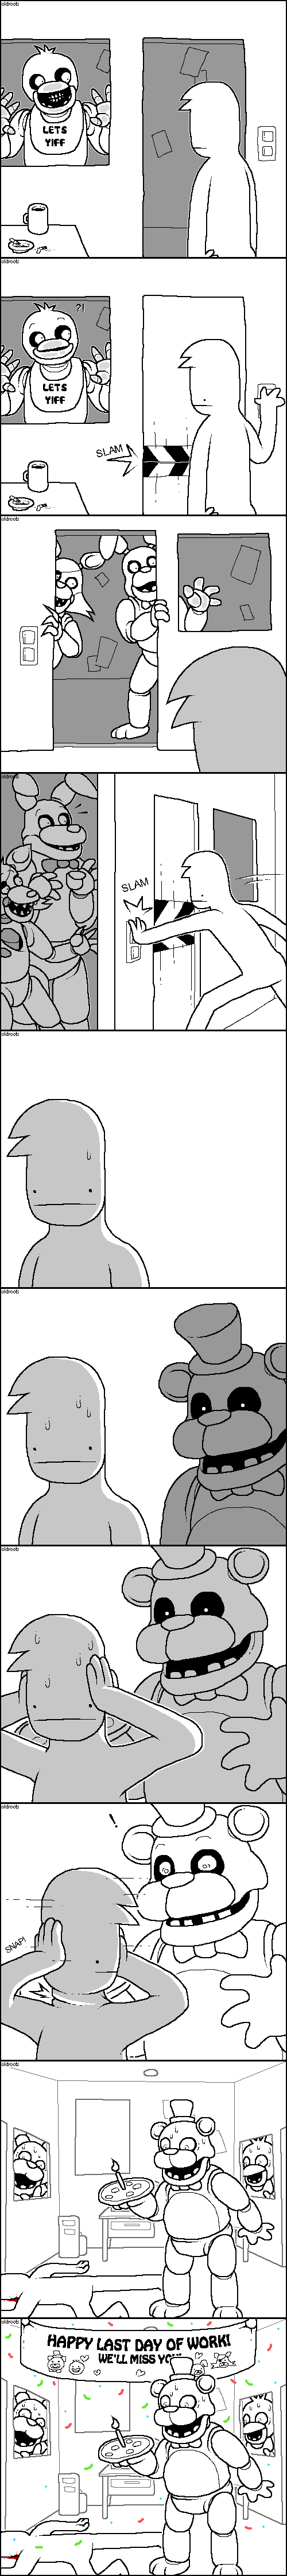 Awkward,web comics,five nights at freddy's